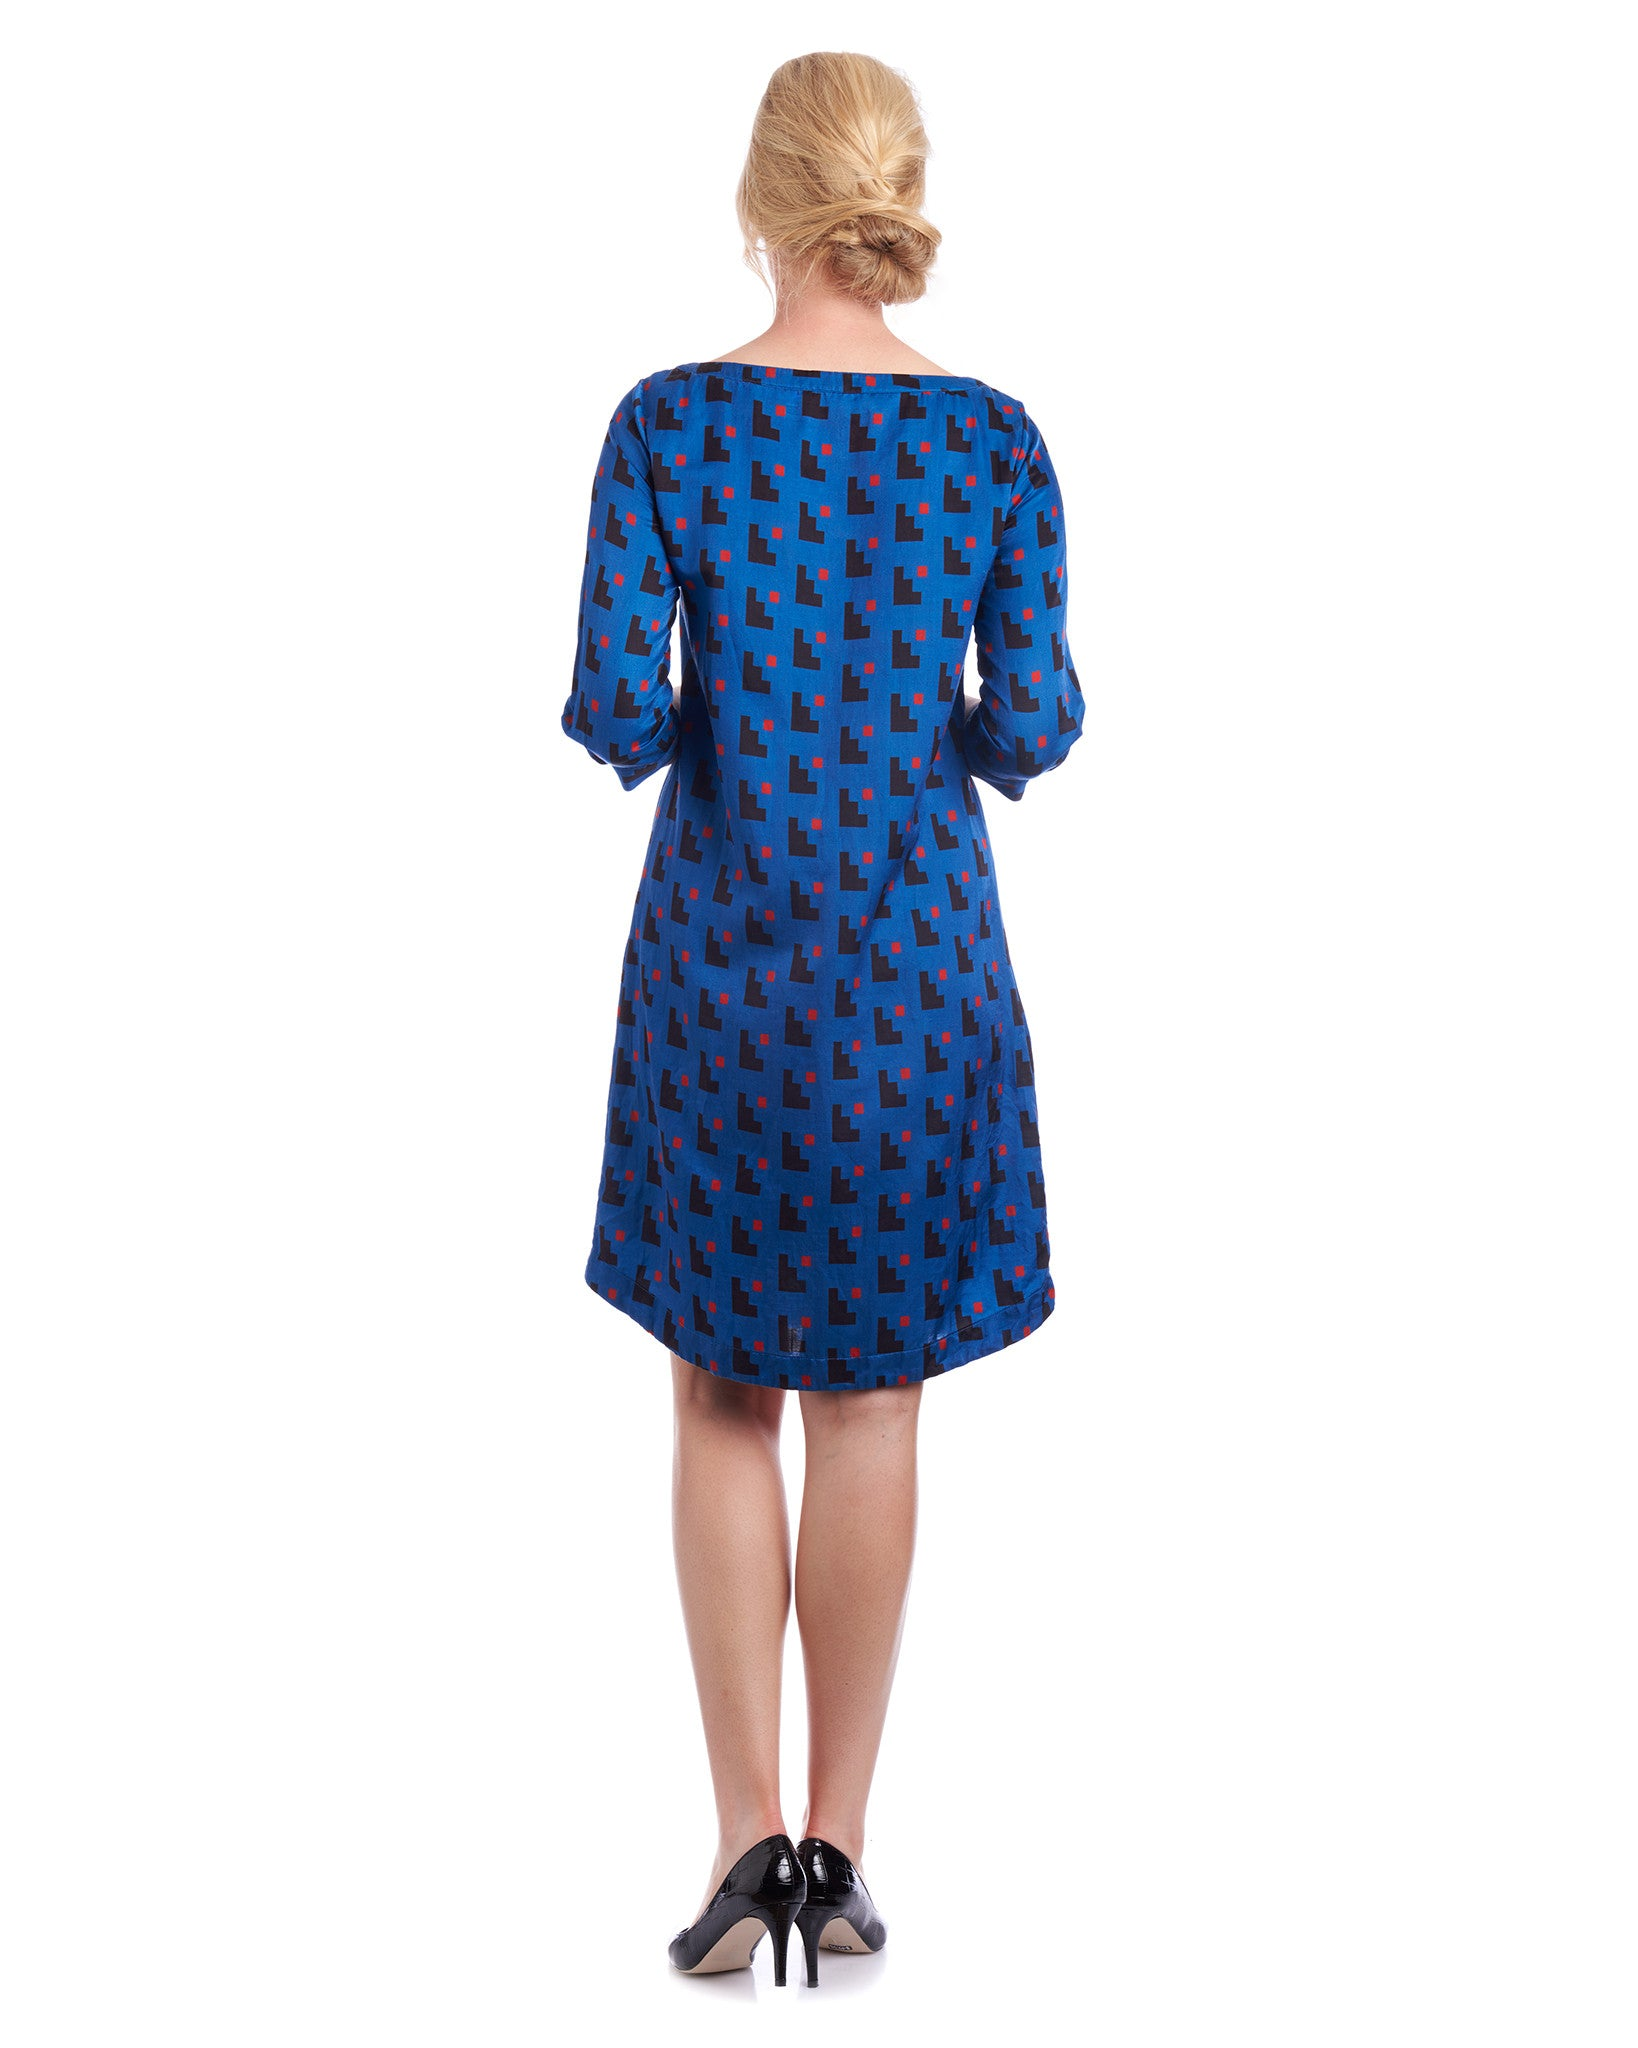 The keyhole on the back of the neckline gives a subtle detail to add to your silk dress with print